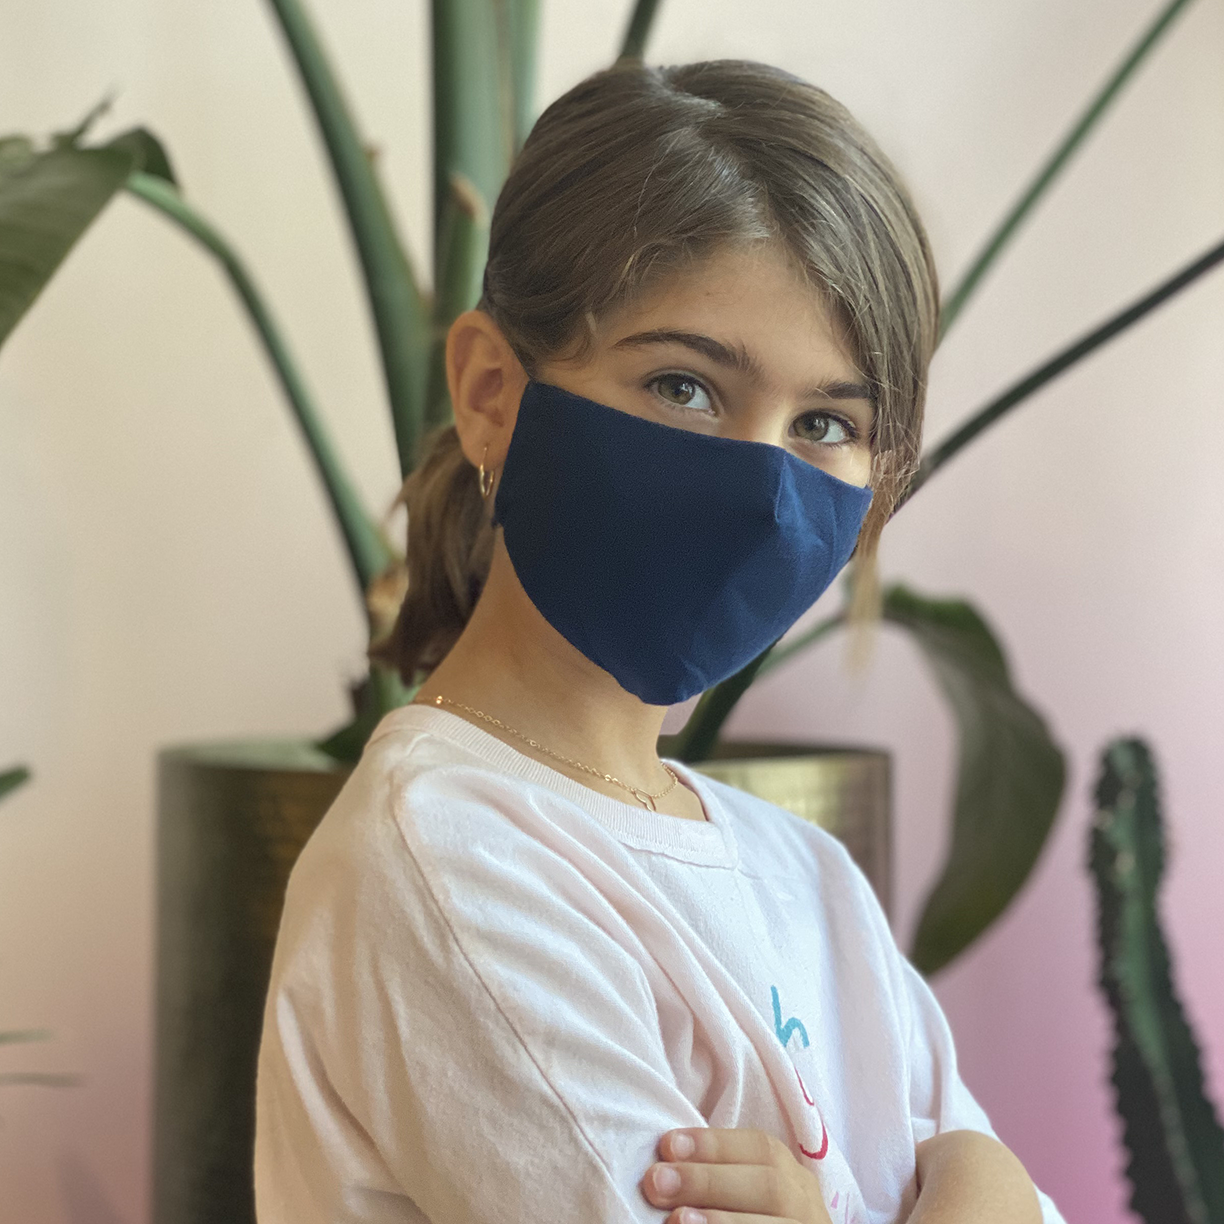 3 layer non-medical cotton mask